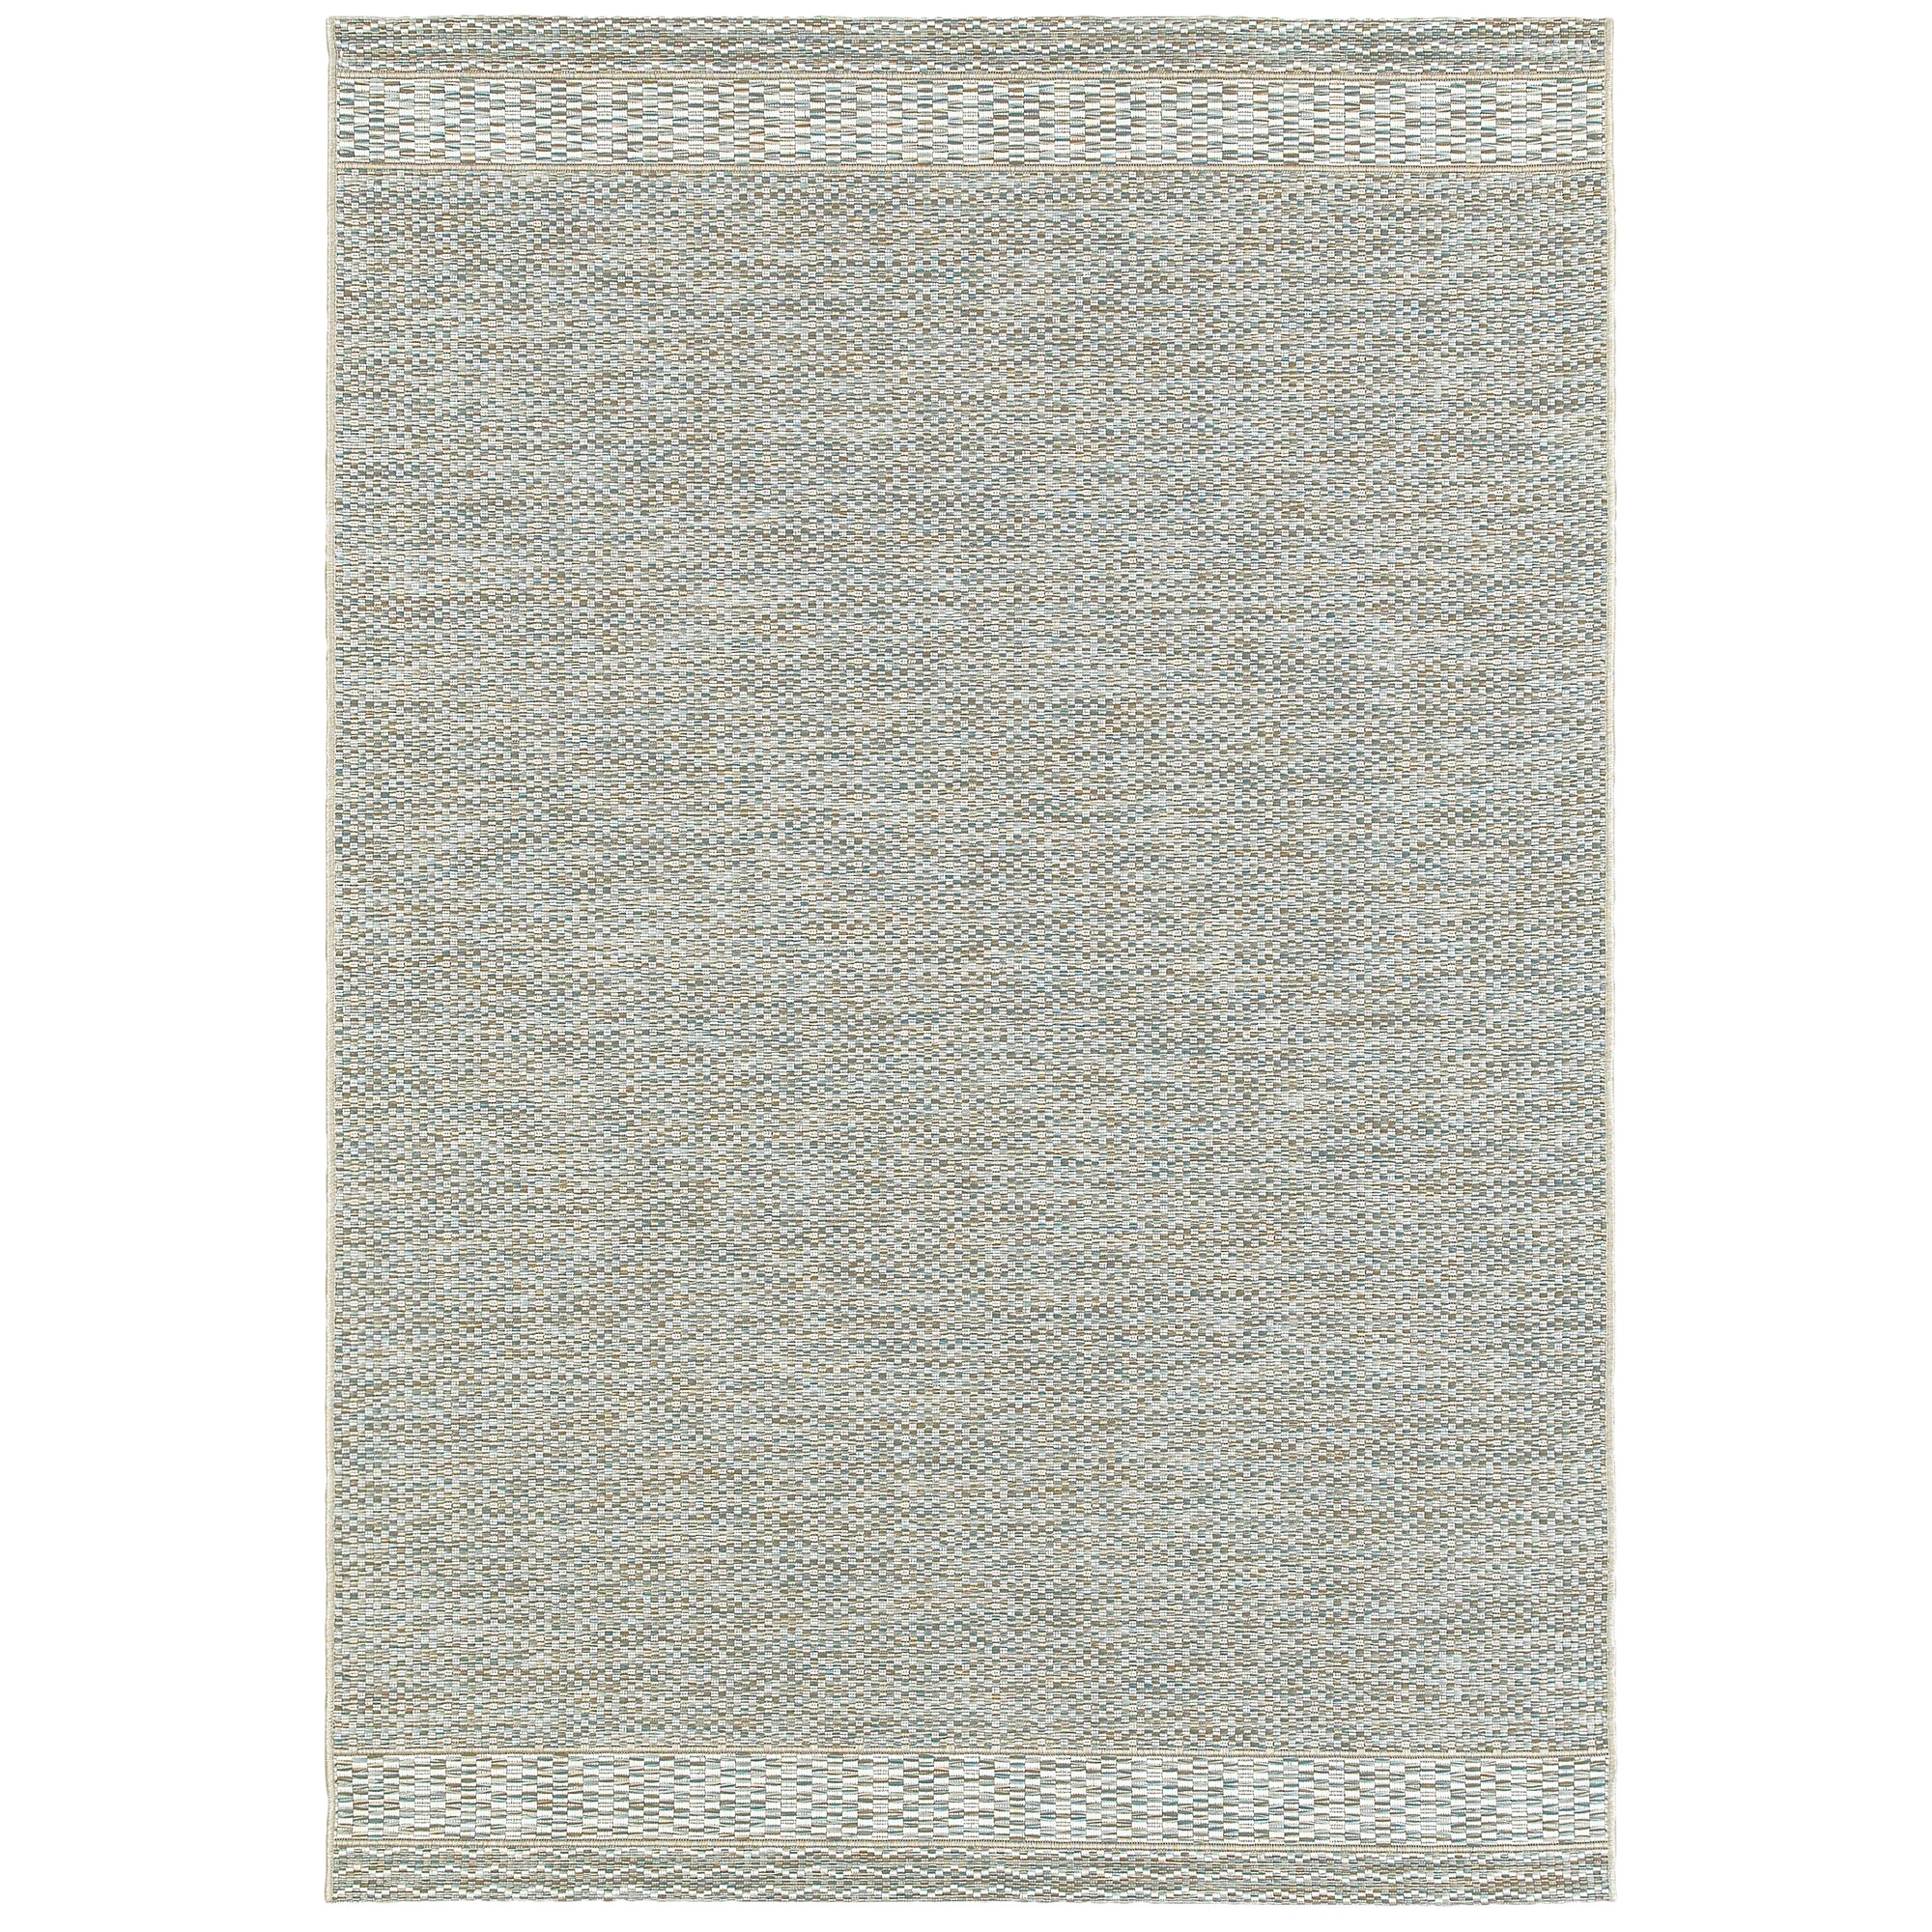 Balta Aberdeen Gray Indoor Outdoor Area Rug & Reviews